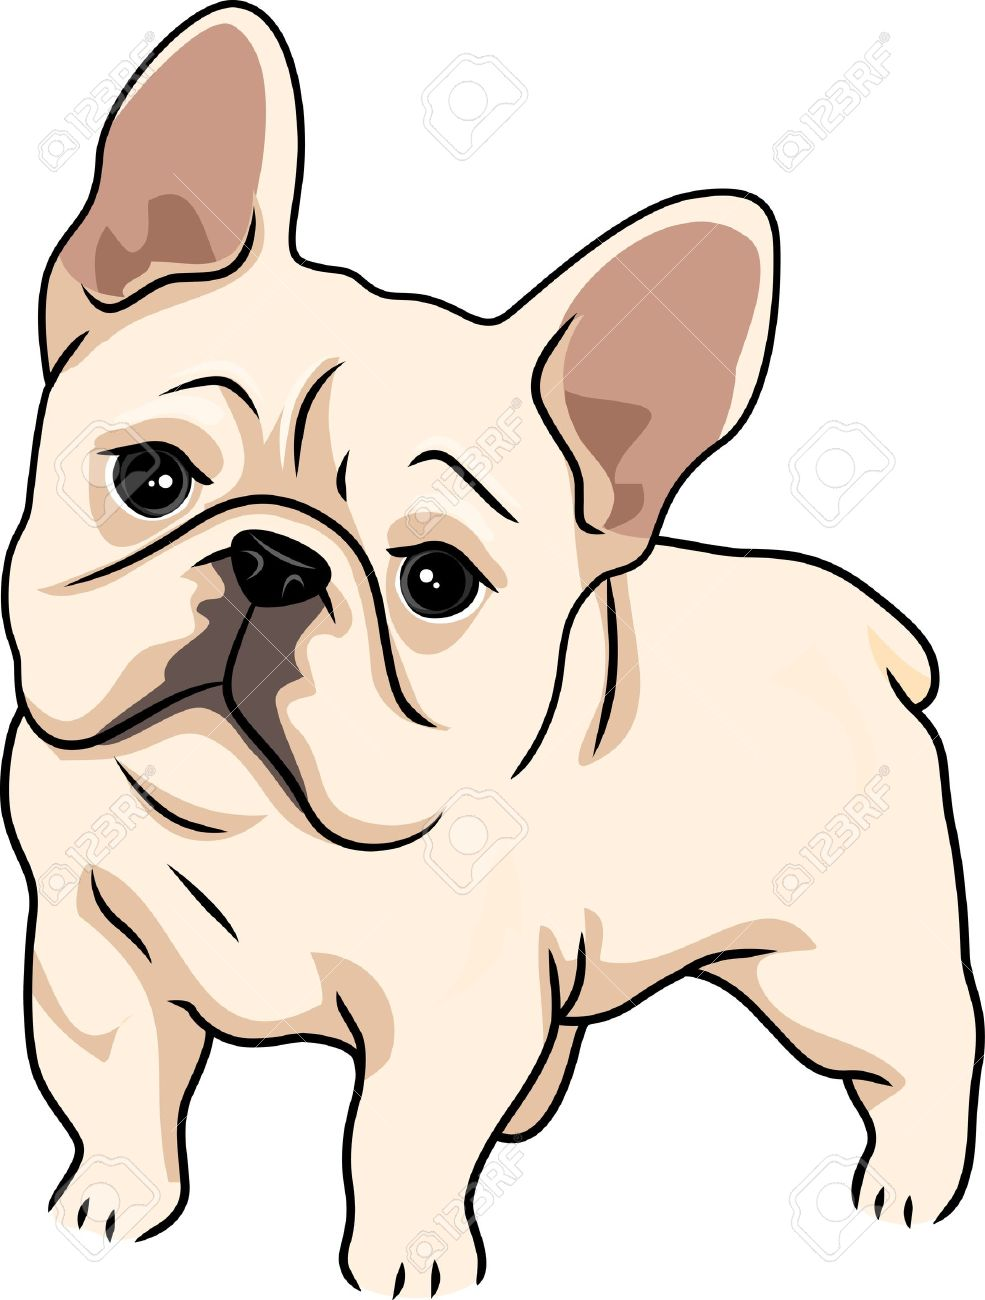 Bulldog clipart bulldog puppy. At getdrawings com free